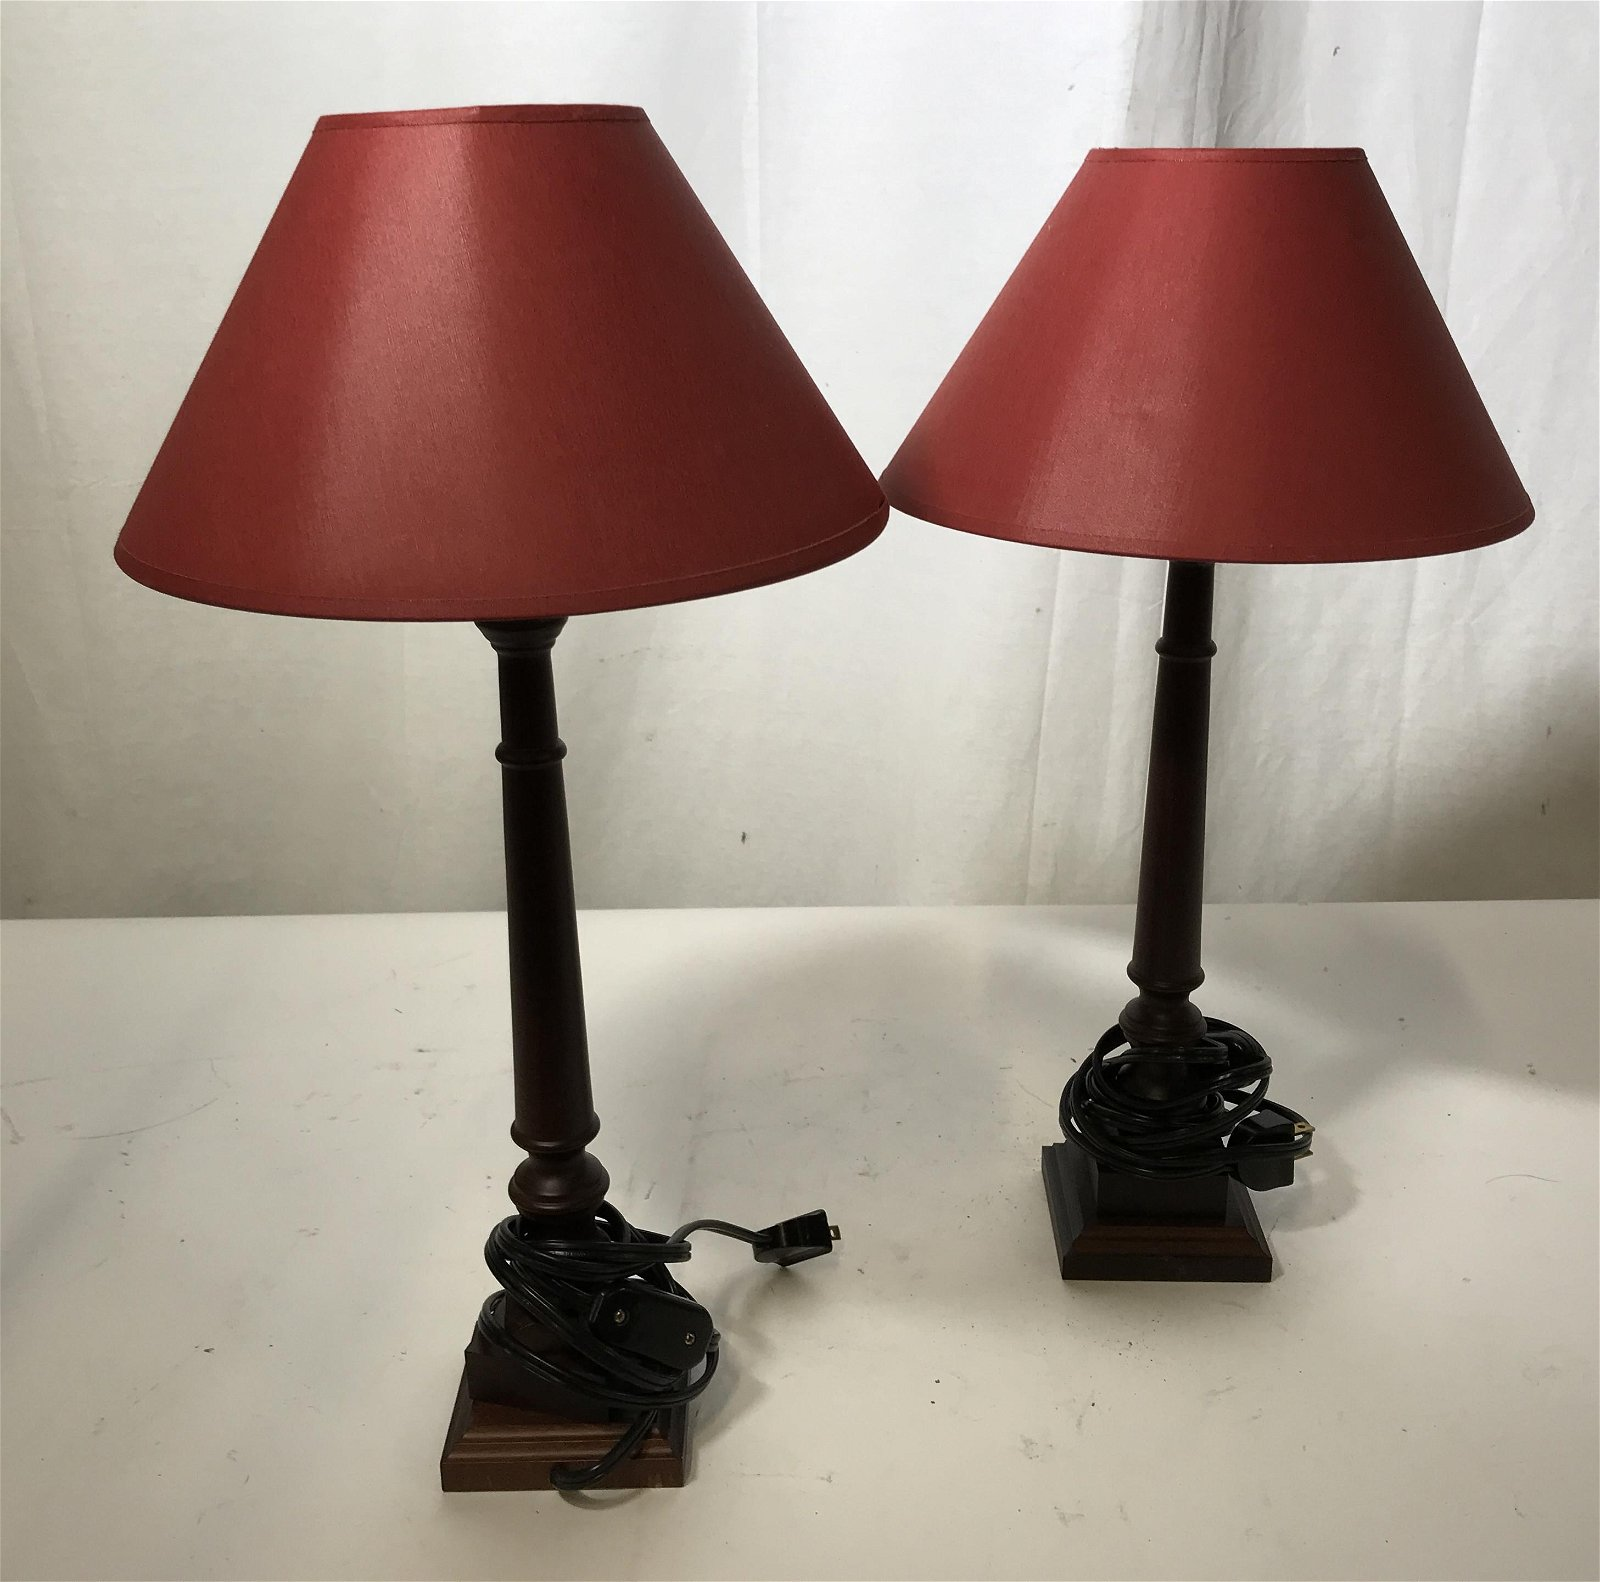 Pair of Wooden Lamps with Red Shades